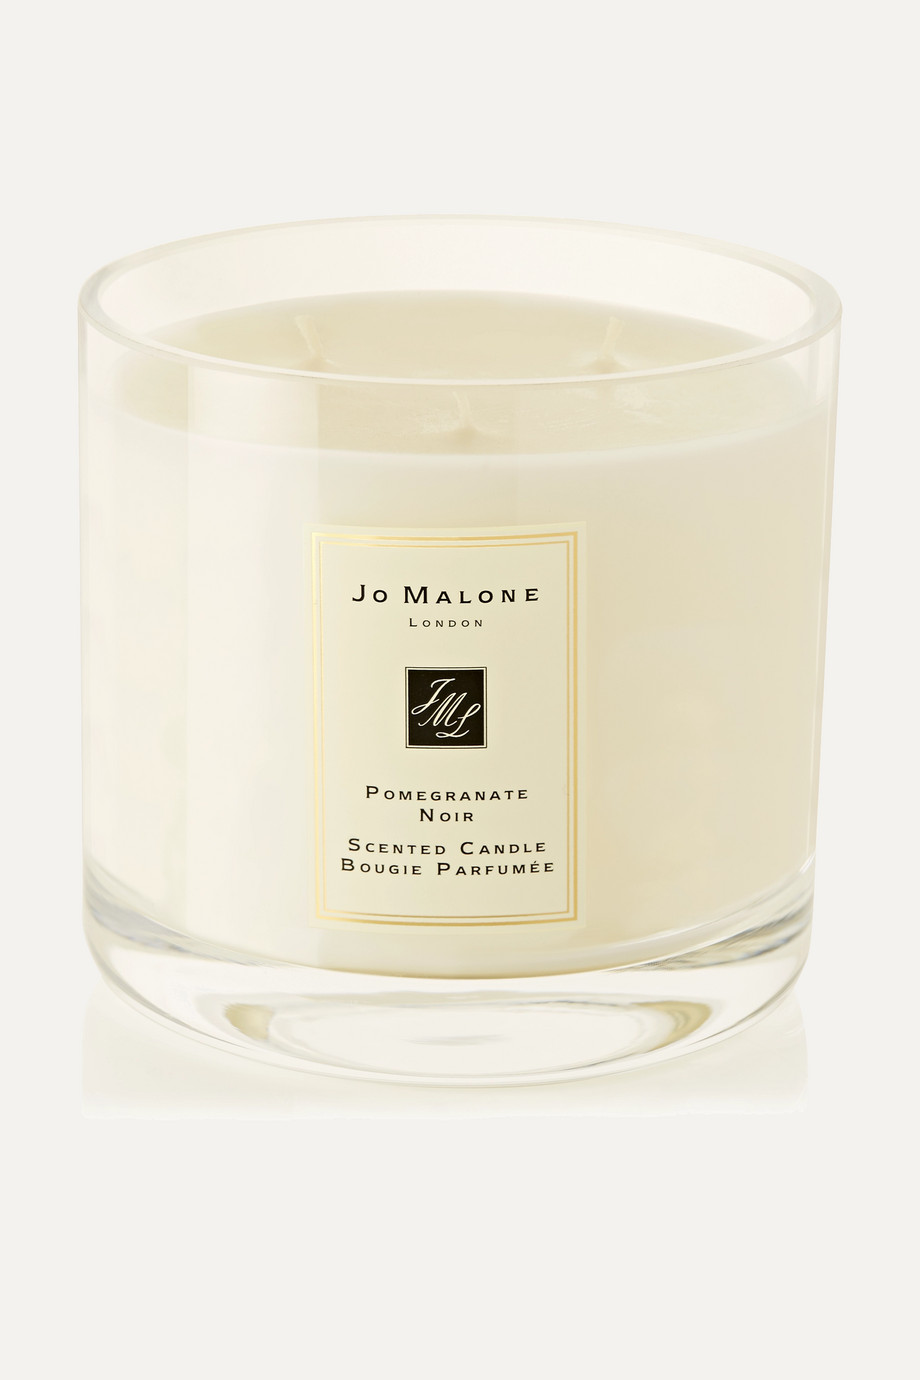 Jo Malone London Pomegranate Noir Scented Deluxe Candle, 600g